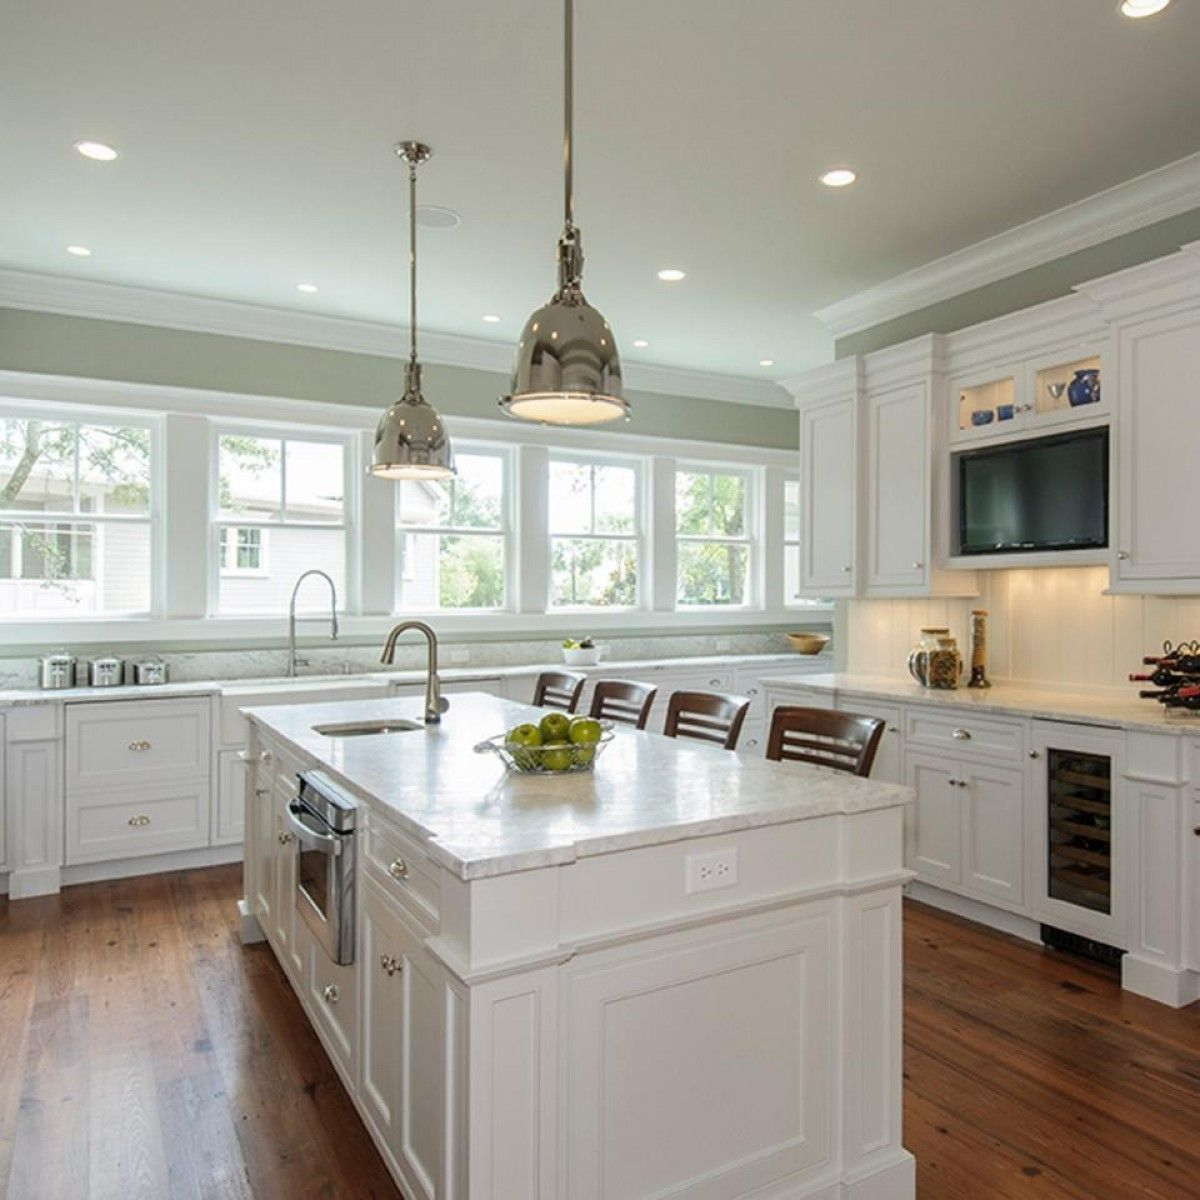 Window under kitchen cabinets  awesome white brown wood stainless glass cool design white kitchen